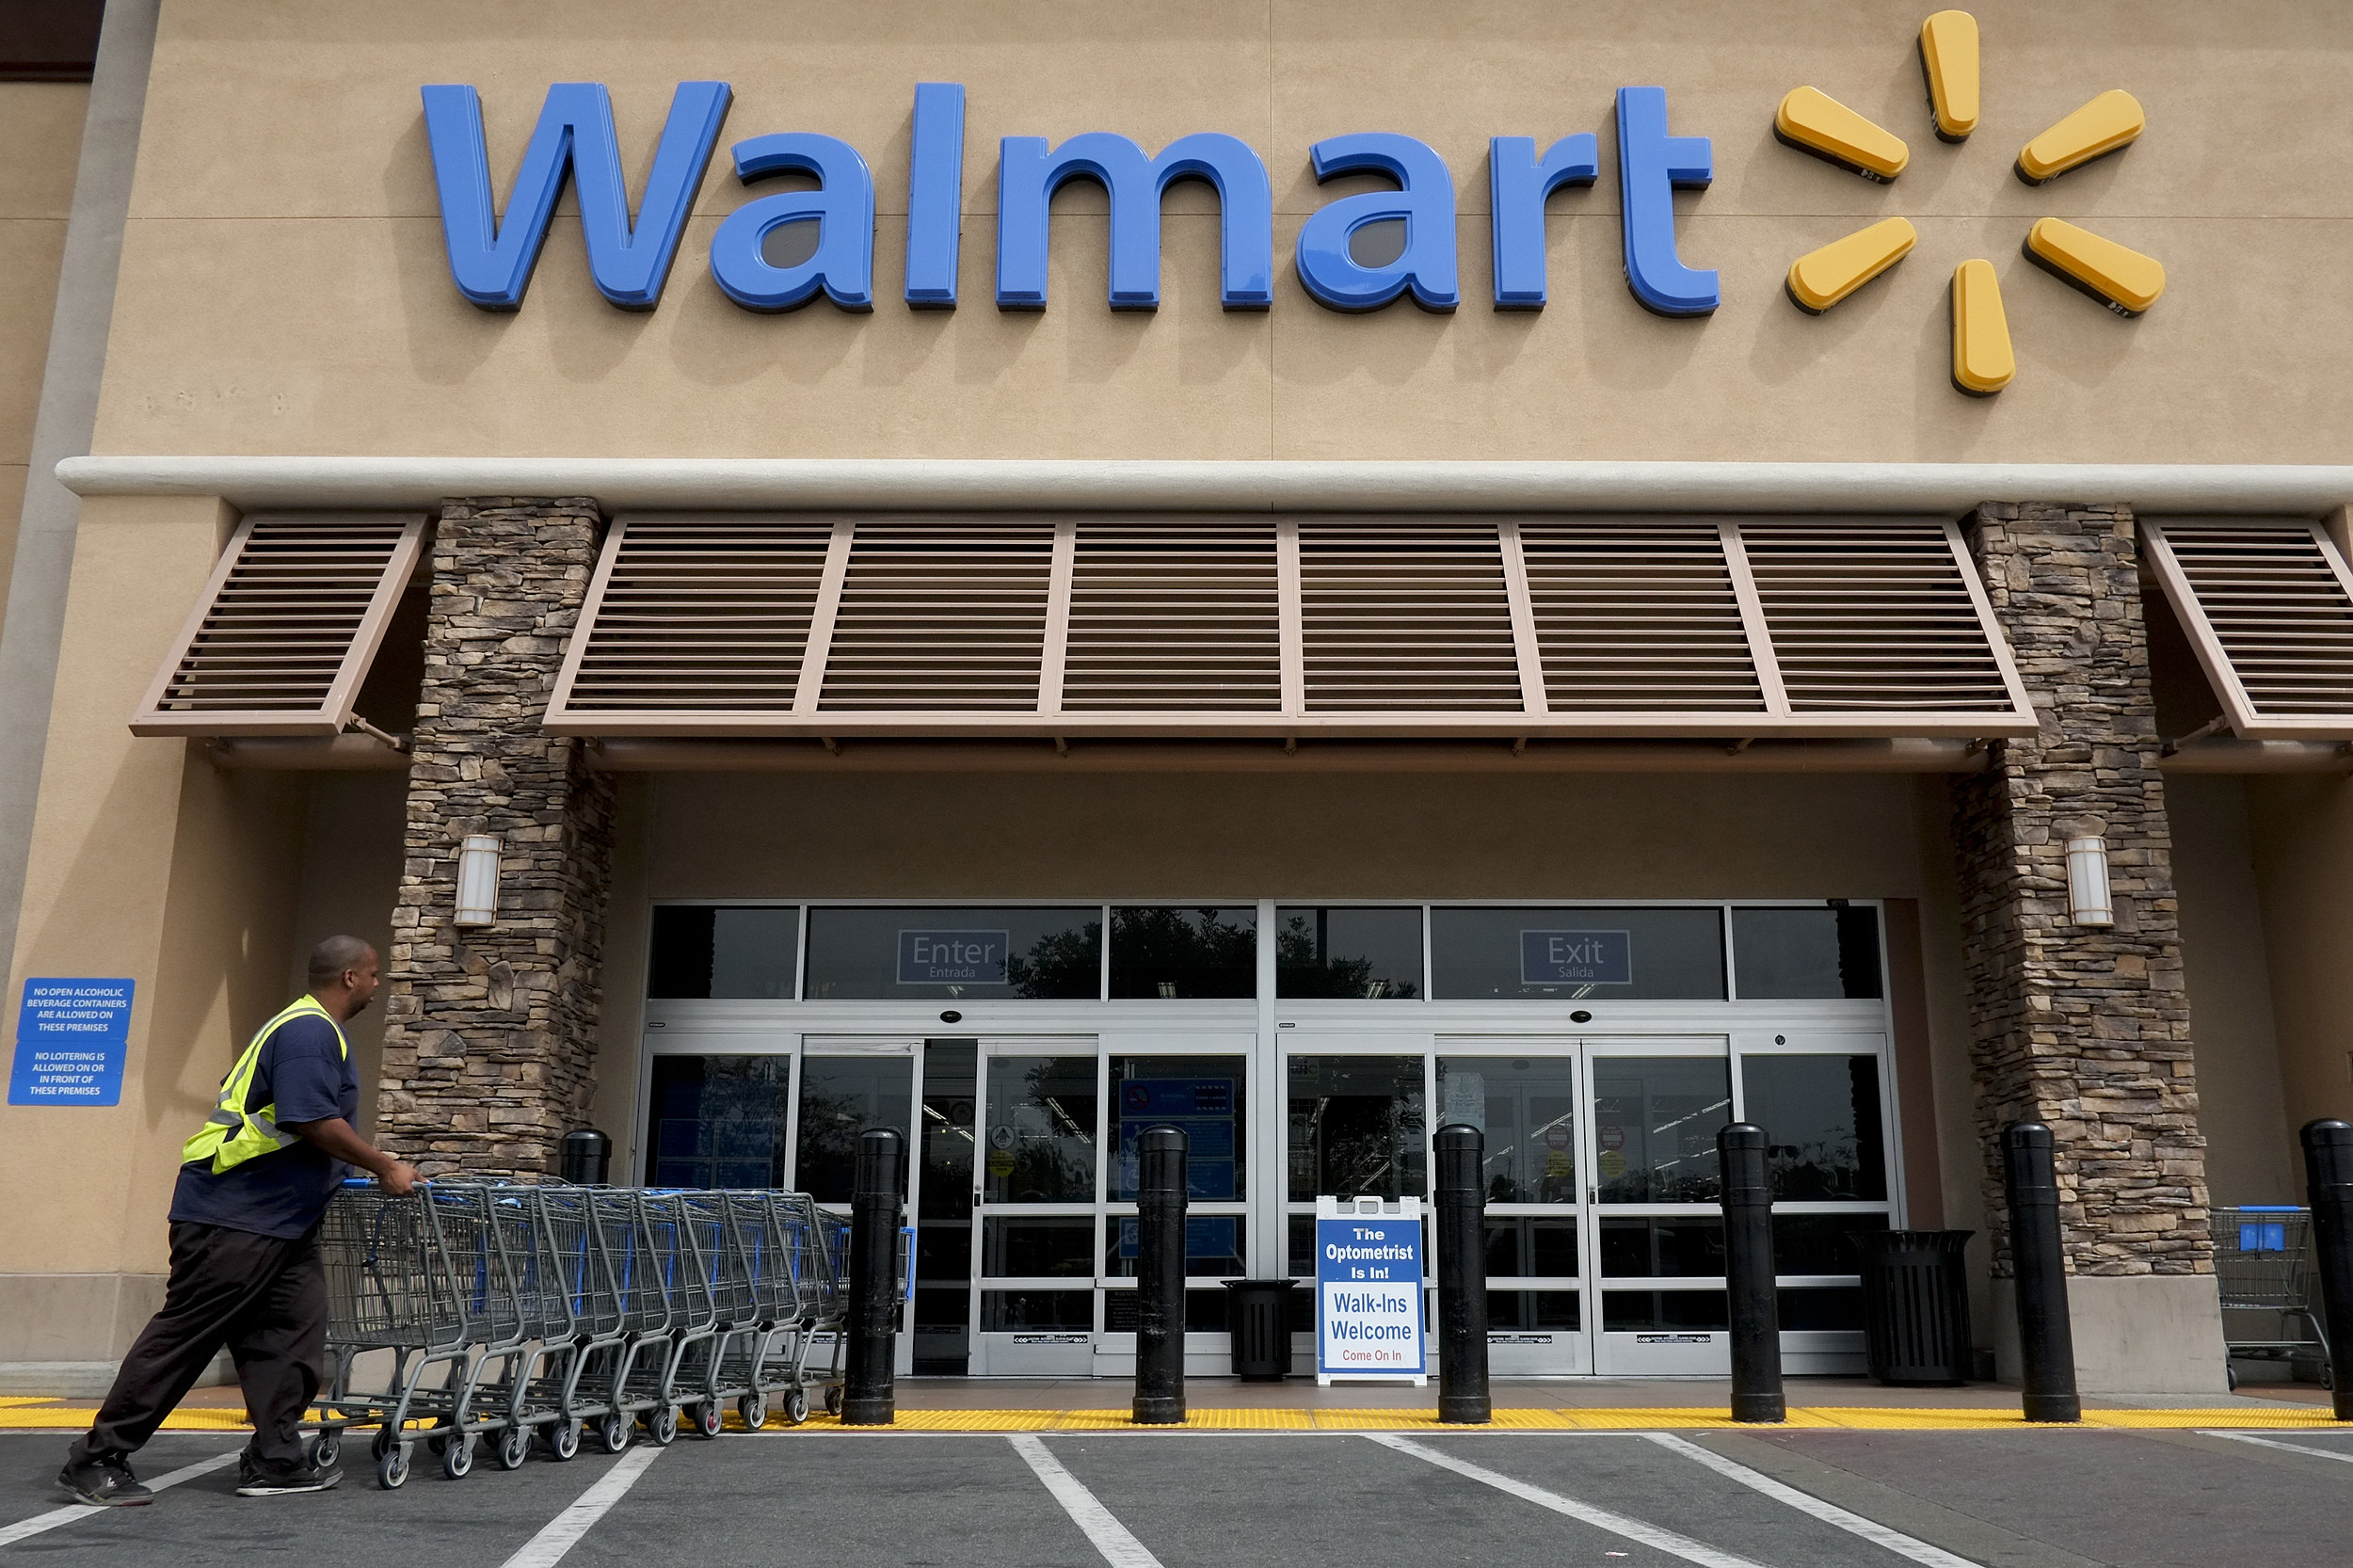 Wal-Mart Mysteriously Shutters Sam's Club Stores